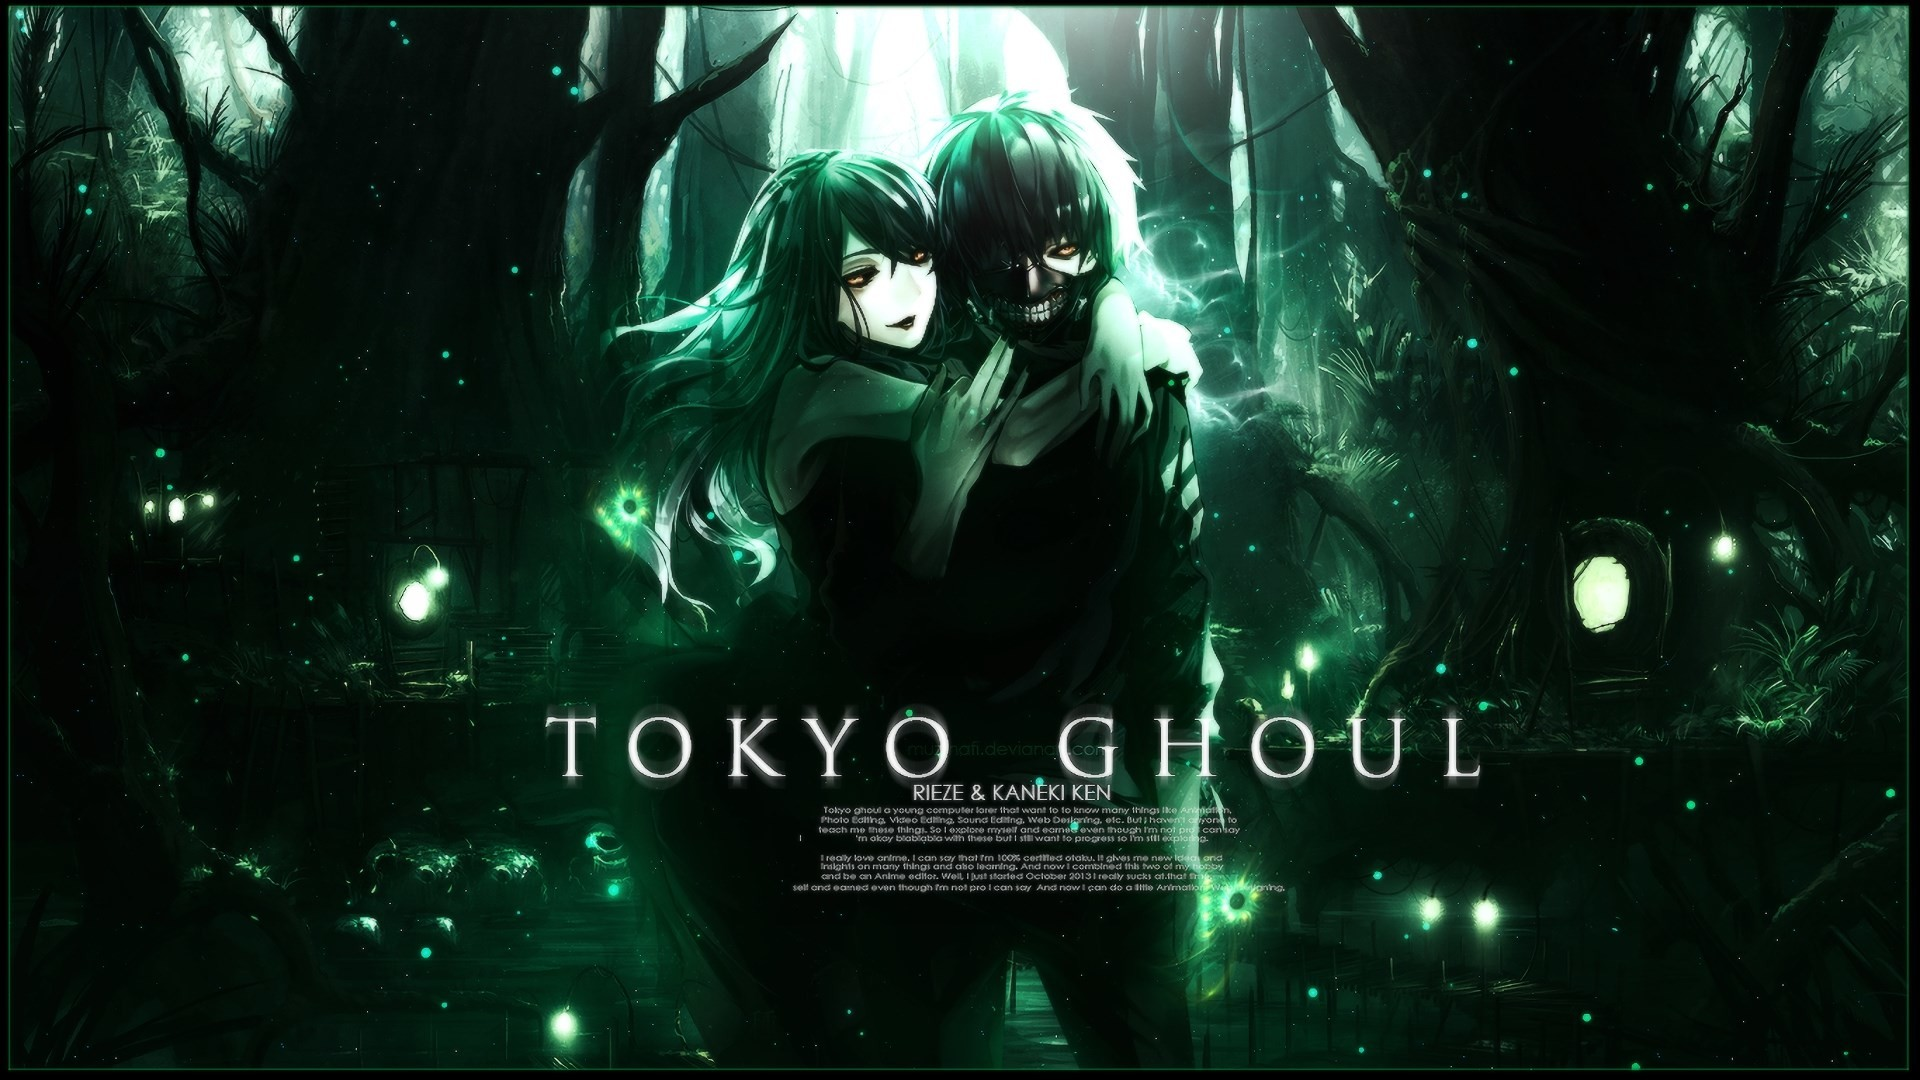 Hd wallpaper tokyo ghoul - 1920x1080 615 Tokyo Ghoul Hd Wallpapers Backgrounds Wallpaper Abyss Page 20